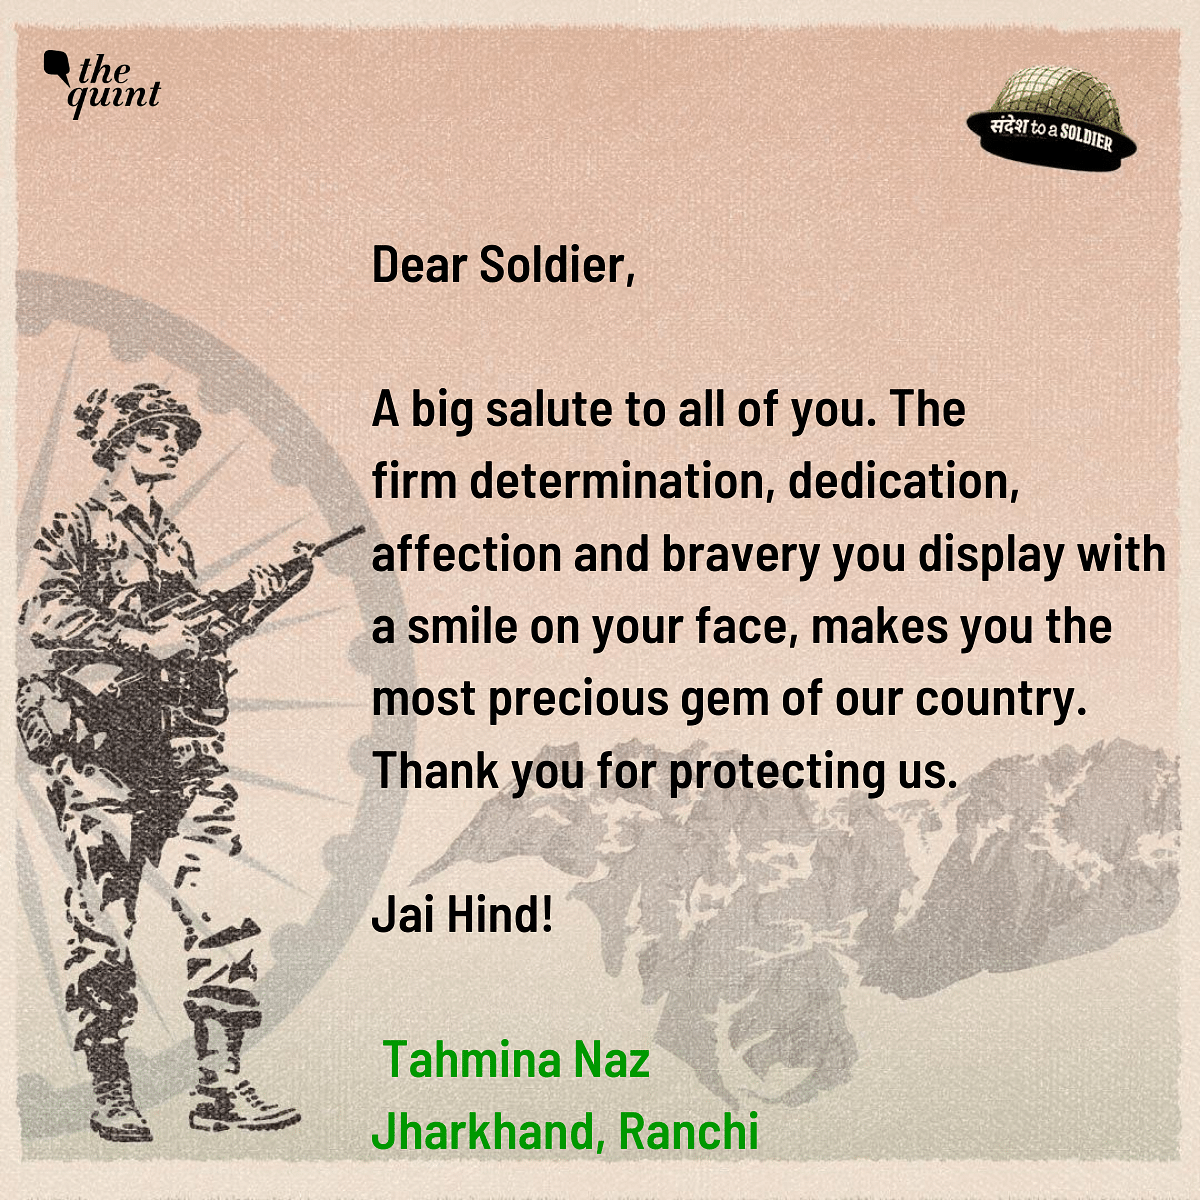 Tahmina Naz from Jharkhand sends her sandesh to a soldier.